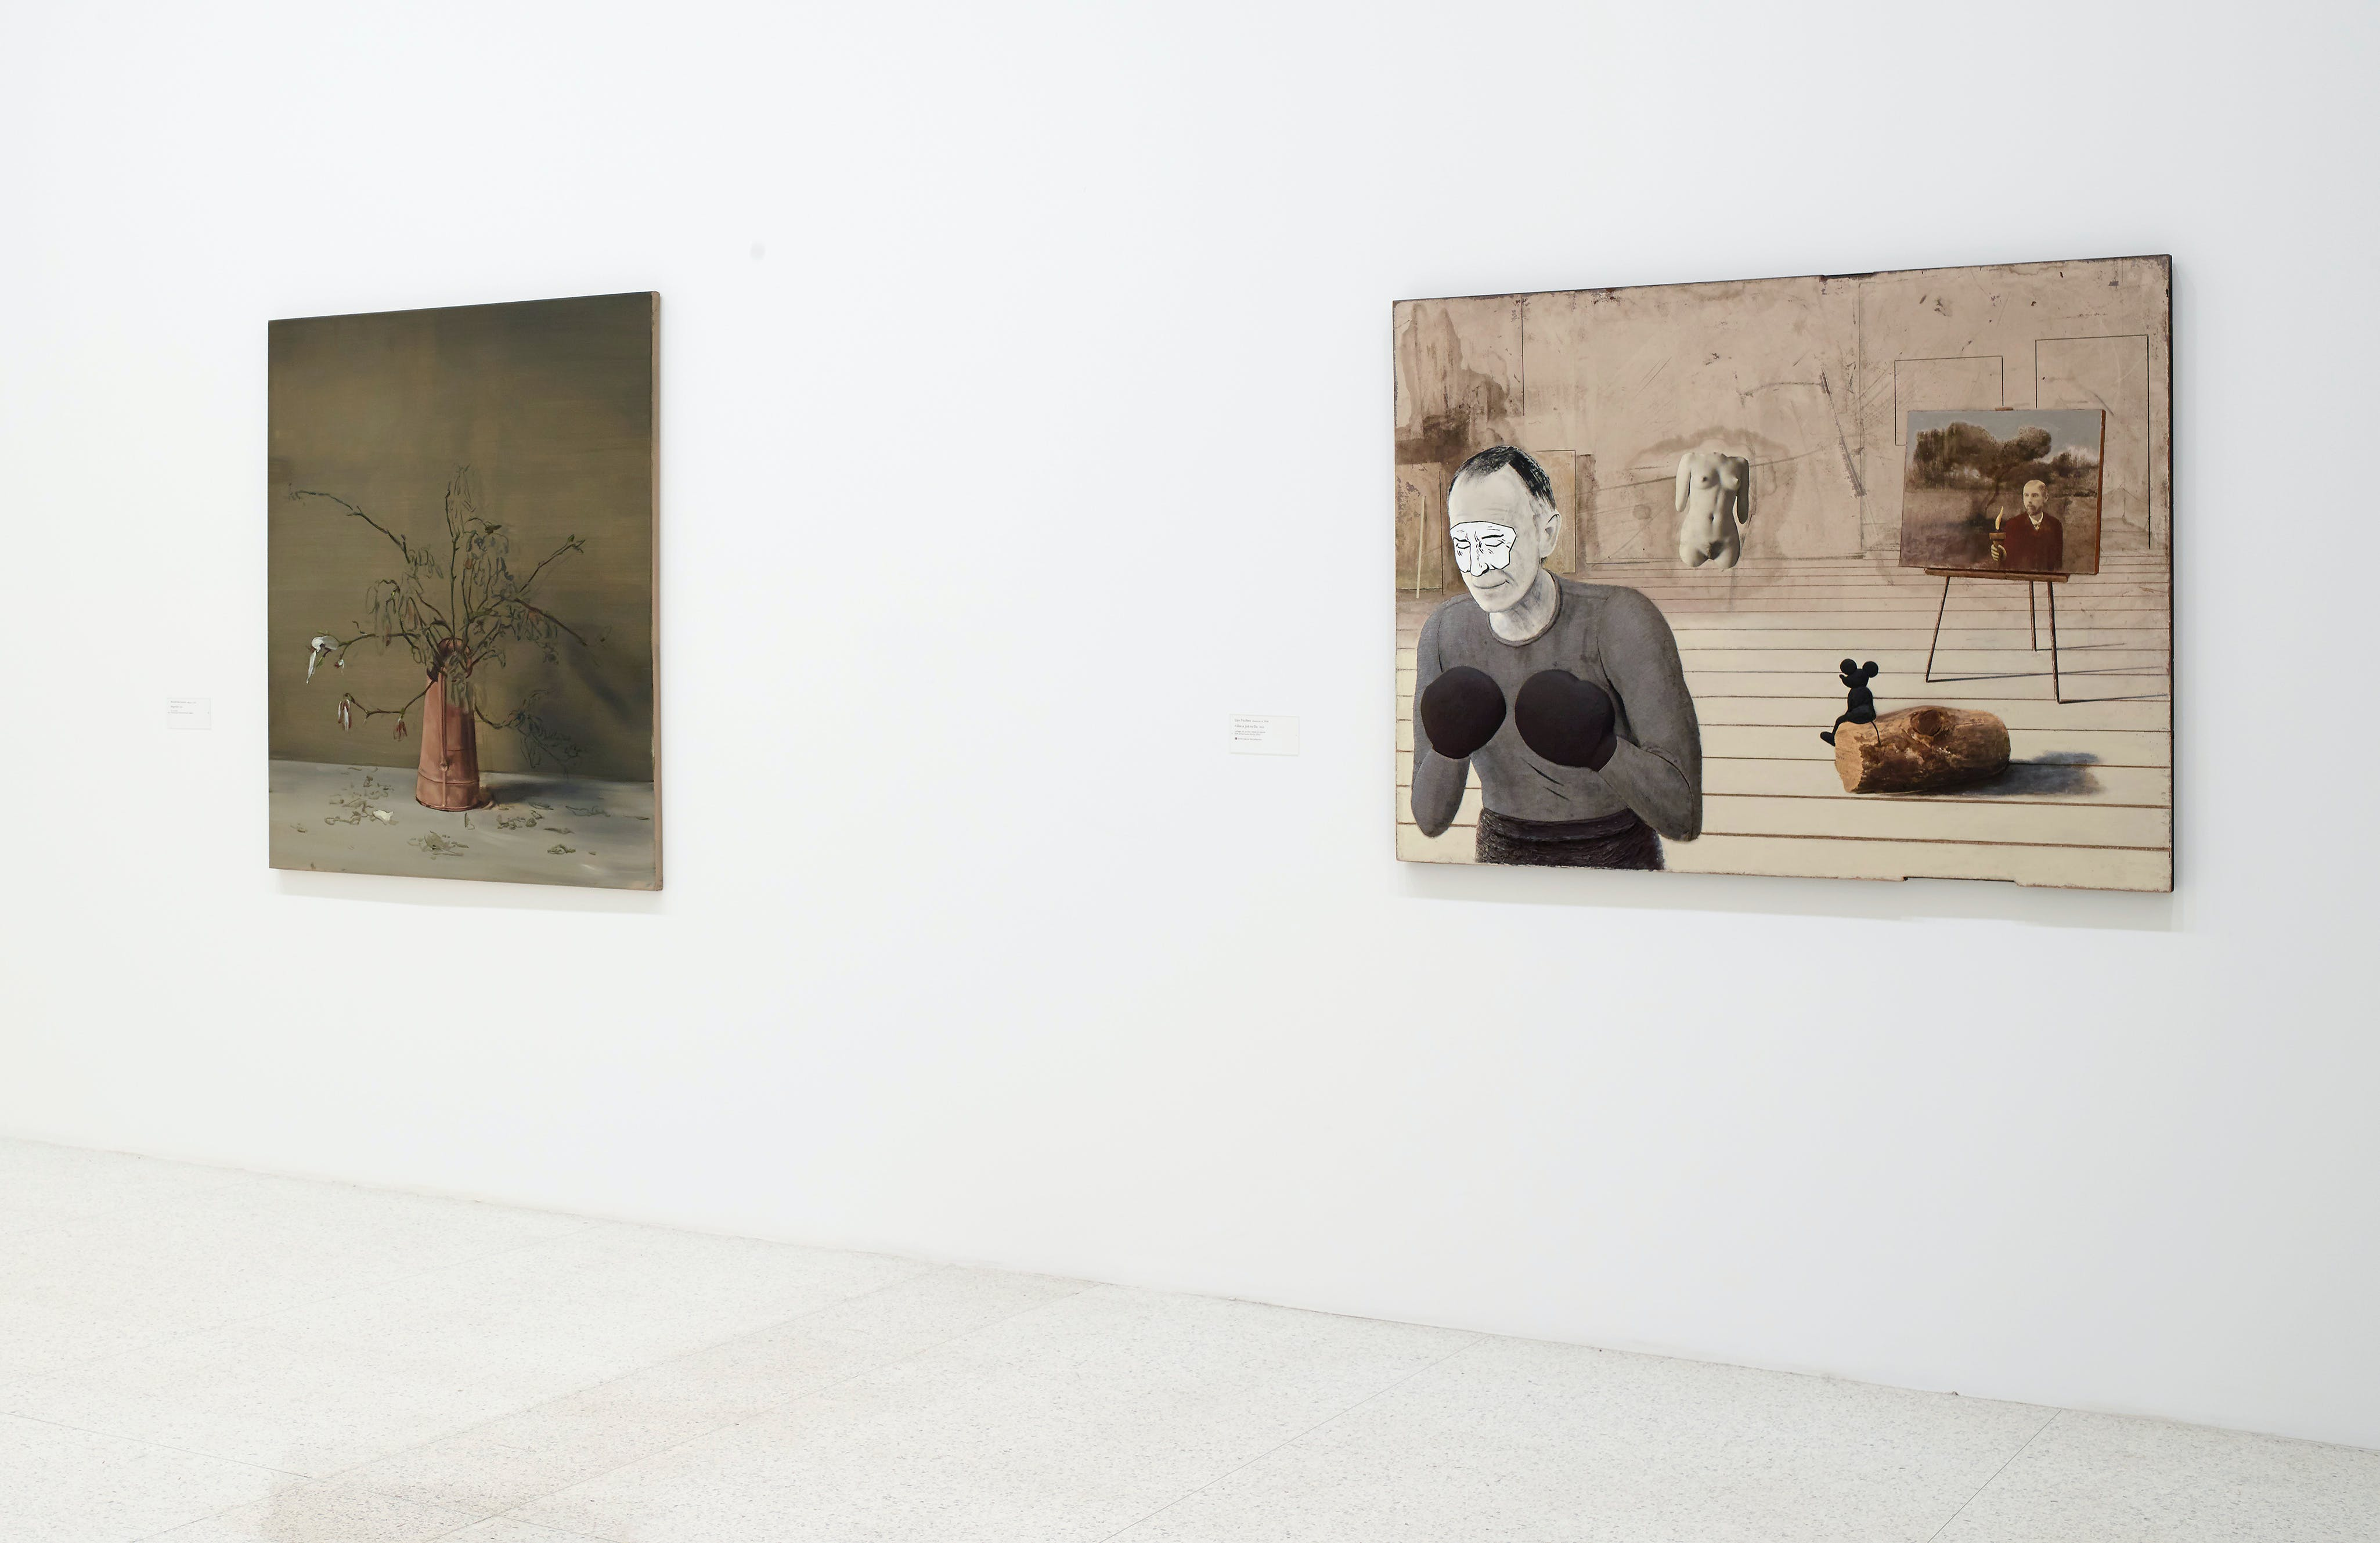 View of the exhibition 75 Gifts for 75 Years, 2015; (left to right): Michael Borremans, Magnolias, 2013; Llyn Foulkes, I Got a Job to Do, 2003